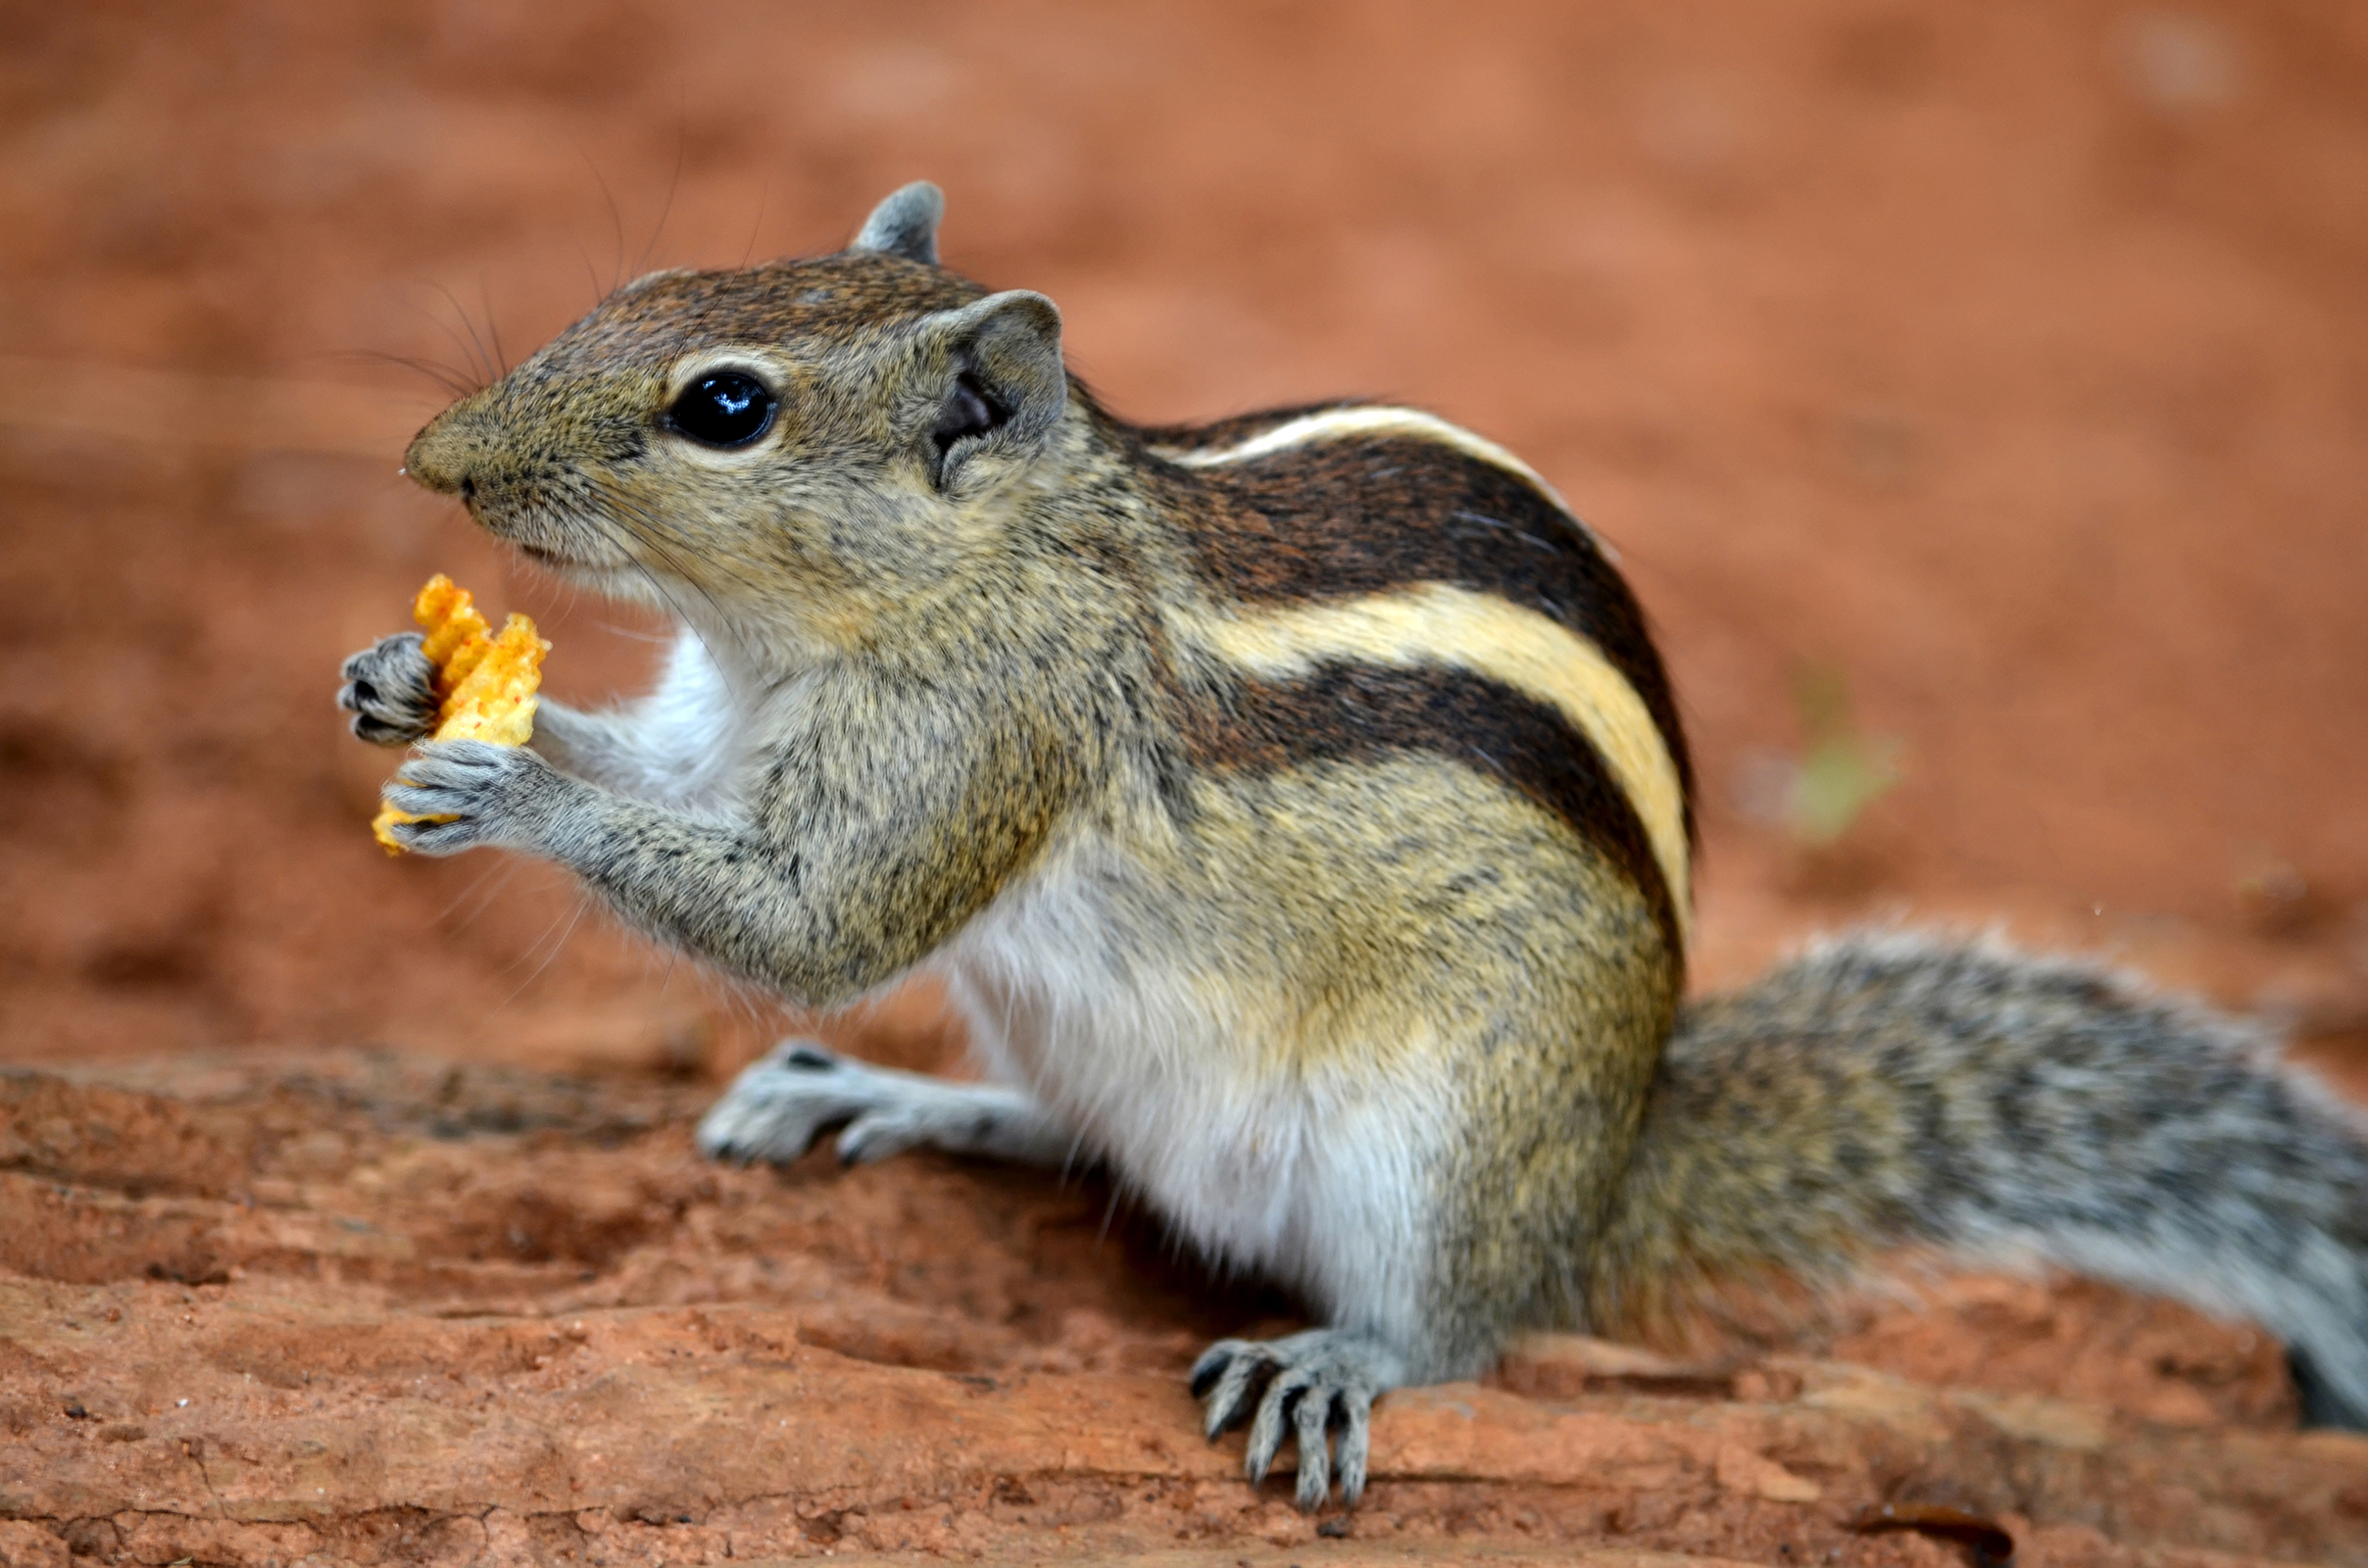 File:Indian Palm Squirrel DS.jpg - Wikimedia Commons